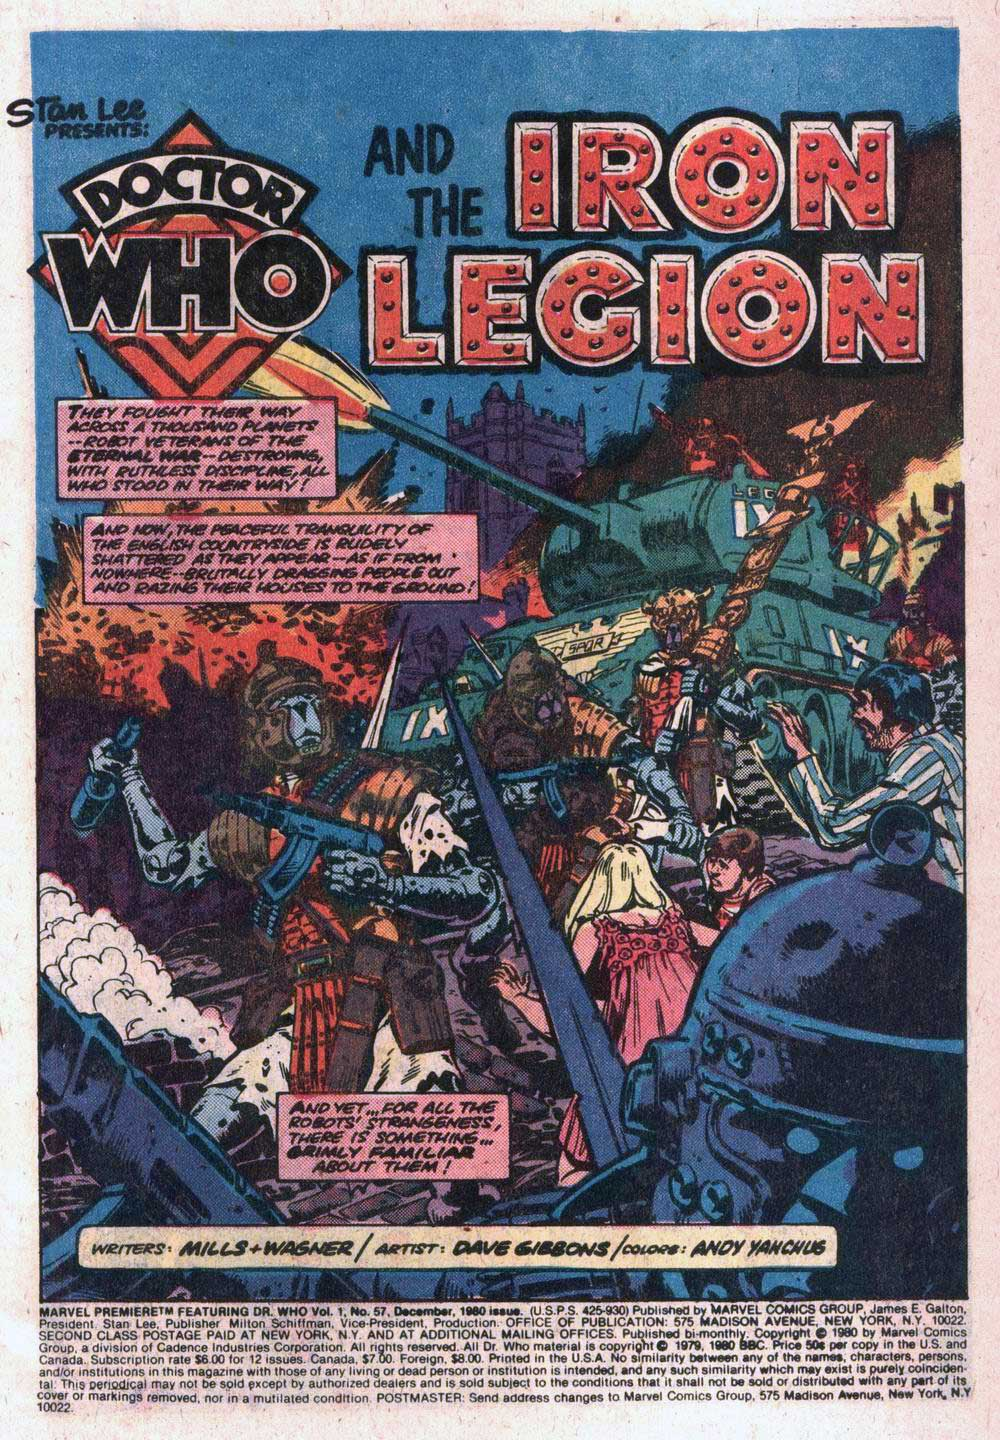 Marvel Premiere #57 with Doctor Who by Dave Gibbons